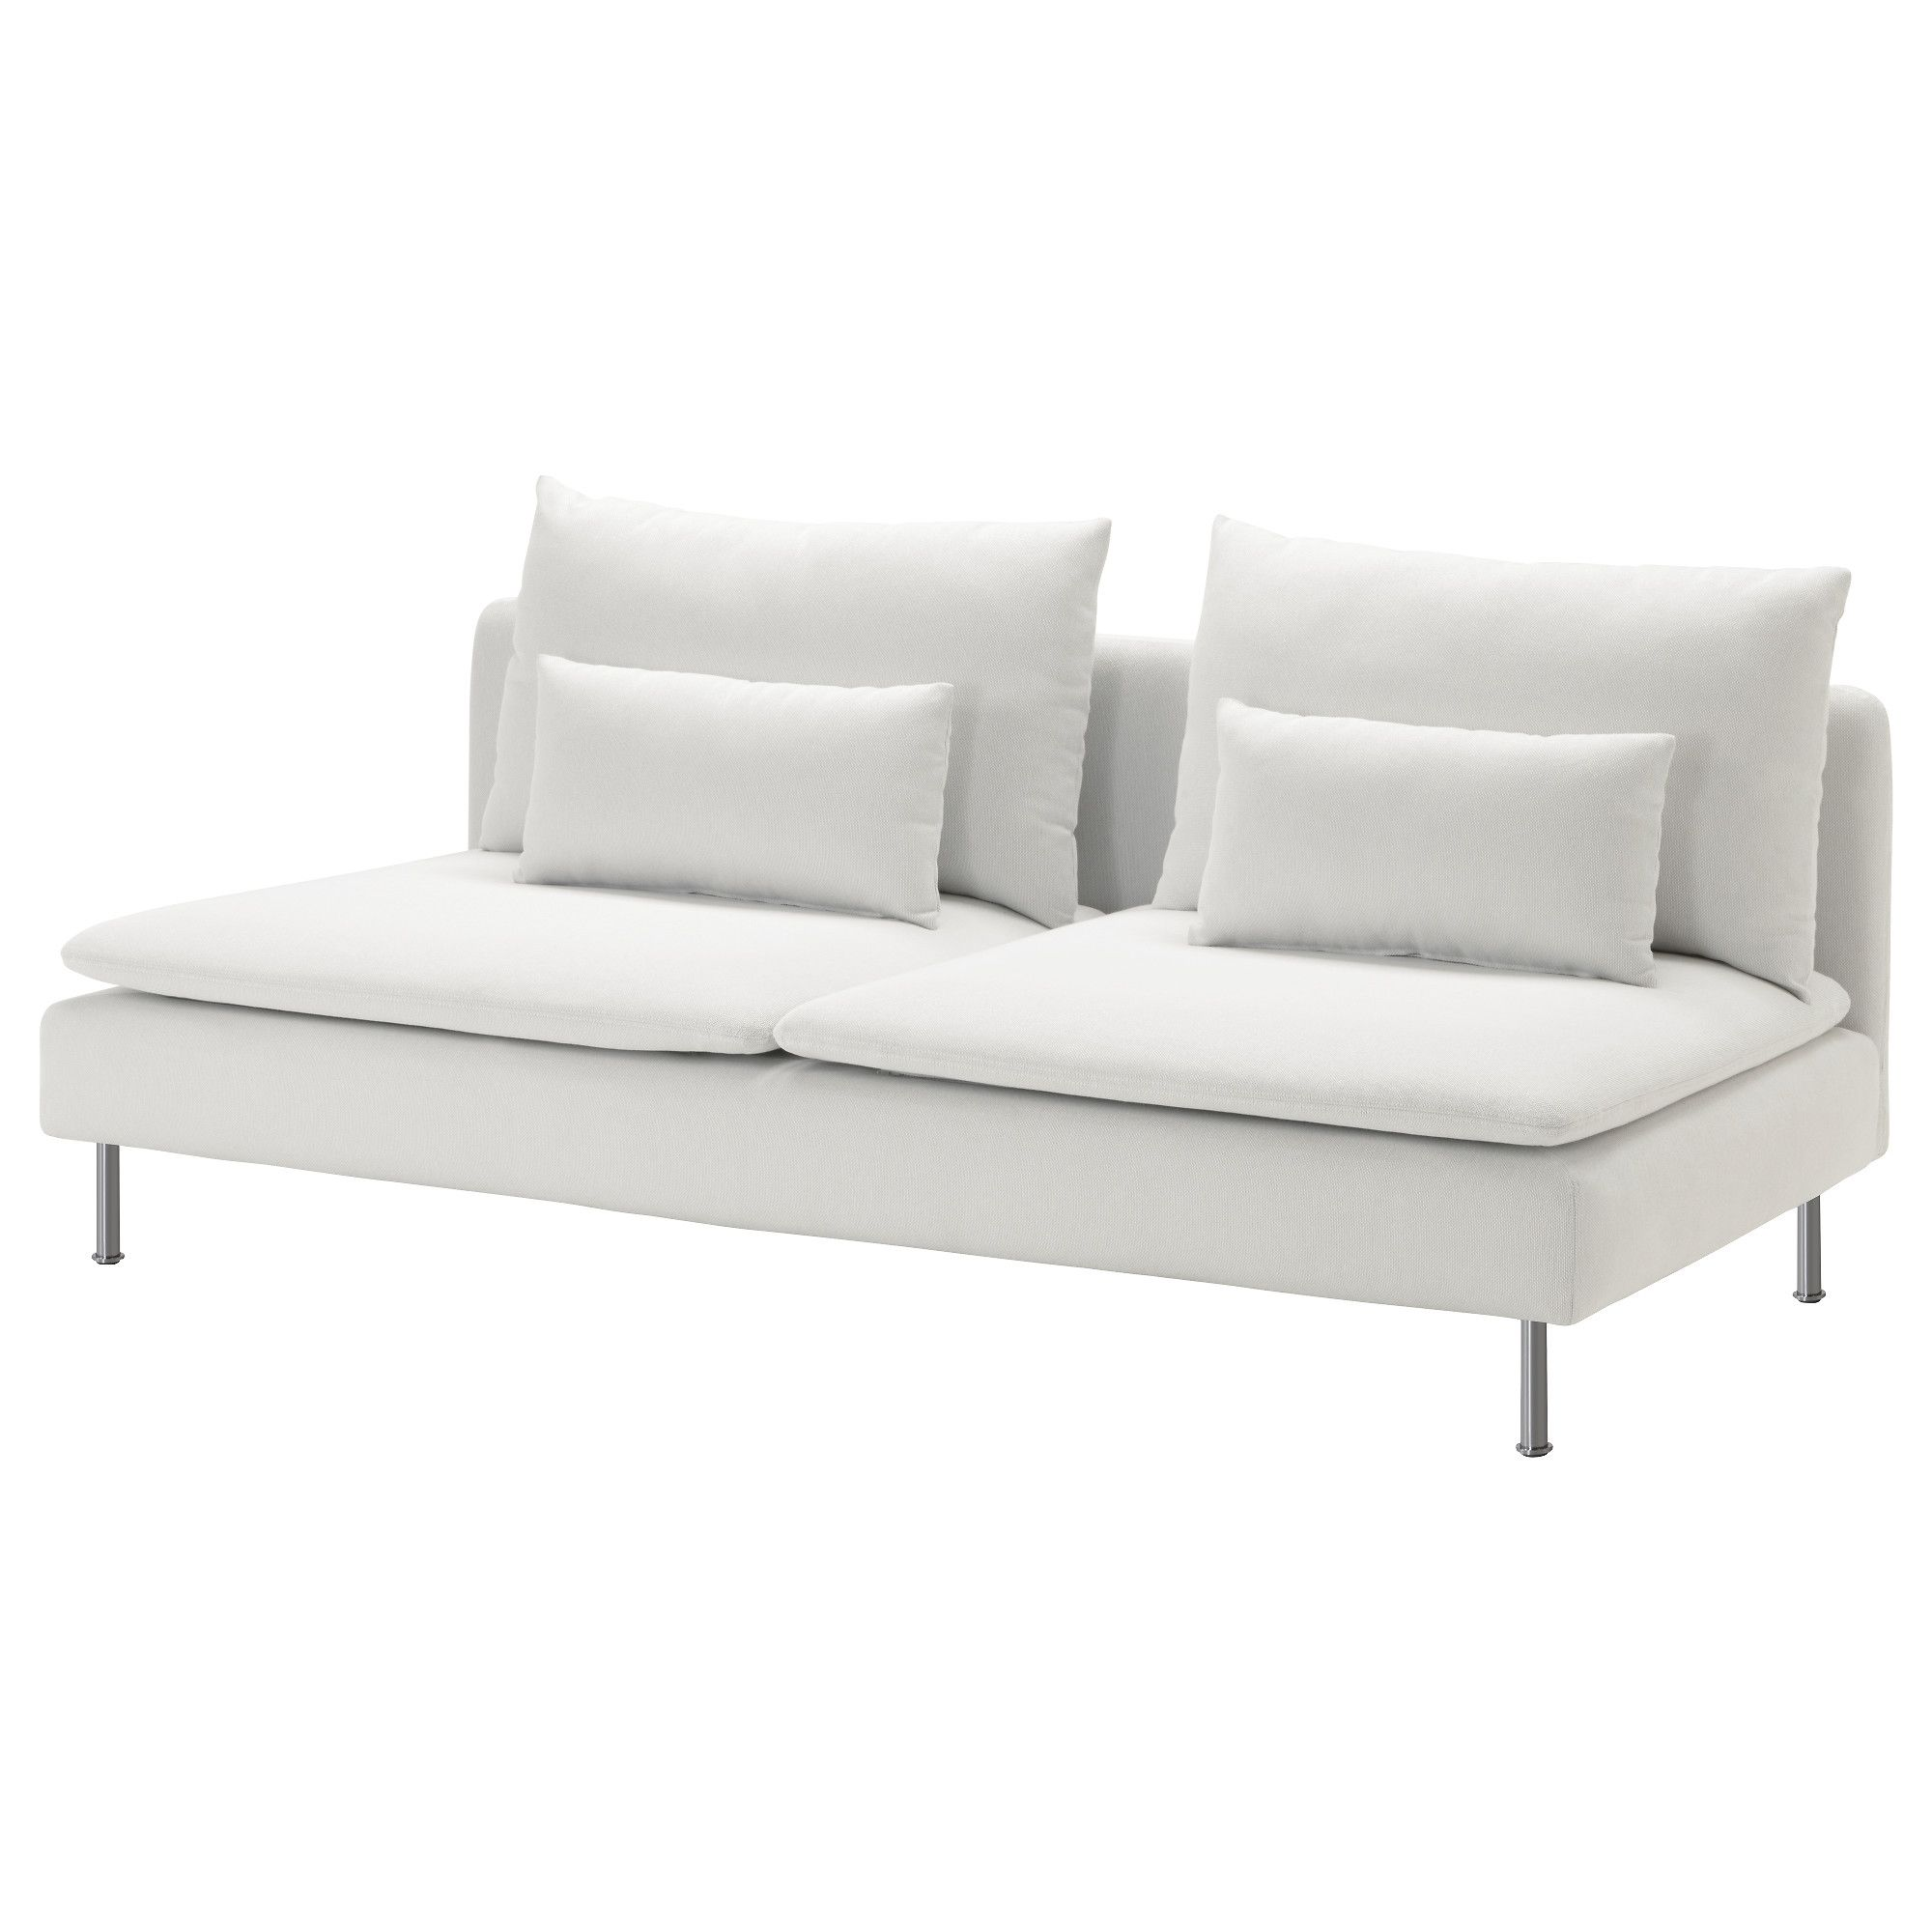 IKEA   SÖDERHAMN, Sofa, Finnsta White , SÖDERHAMN Seating Series Allows You  To Sit Deeply, Low And Softly With The Loose Back Cushions For Extra  Support.